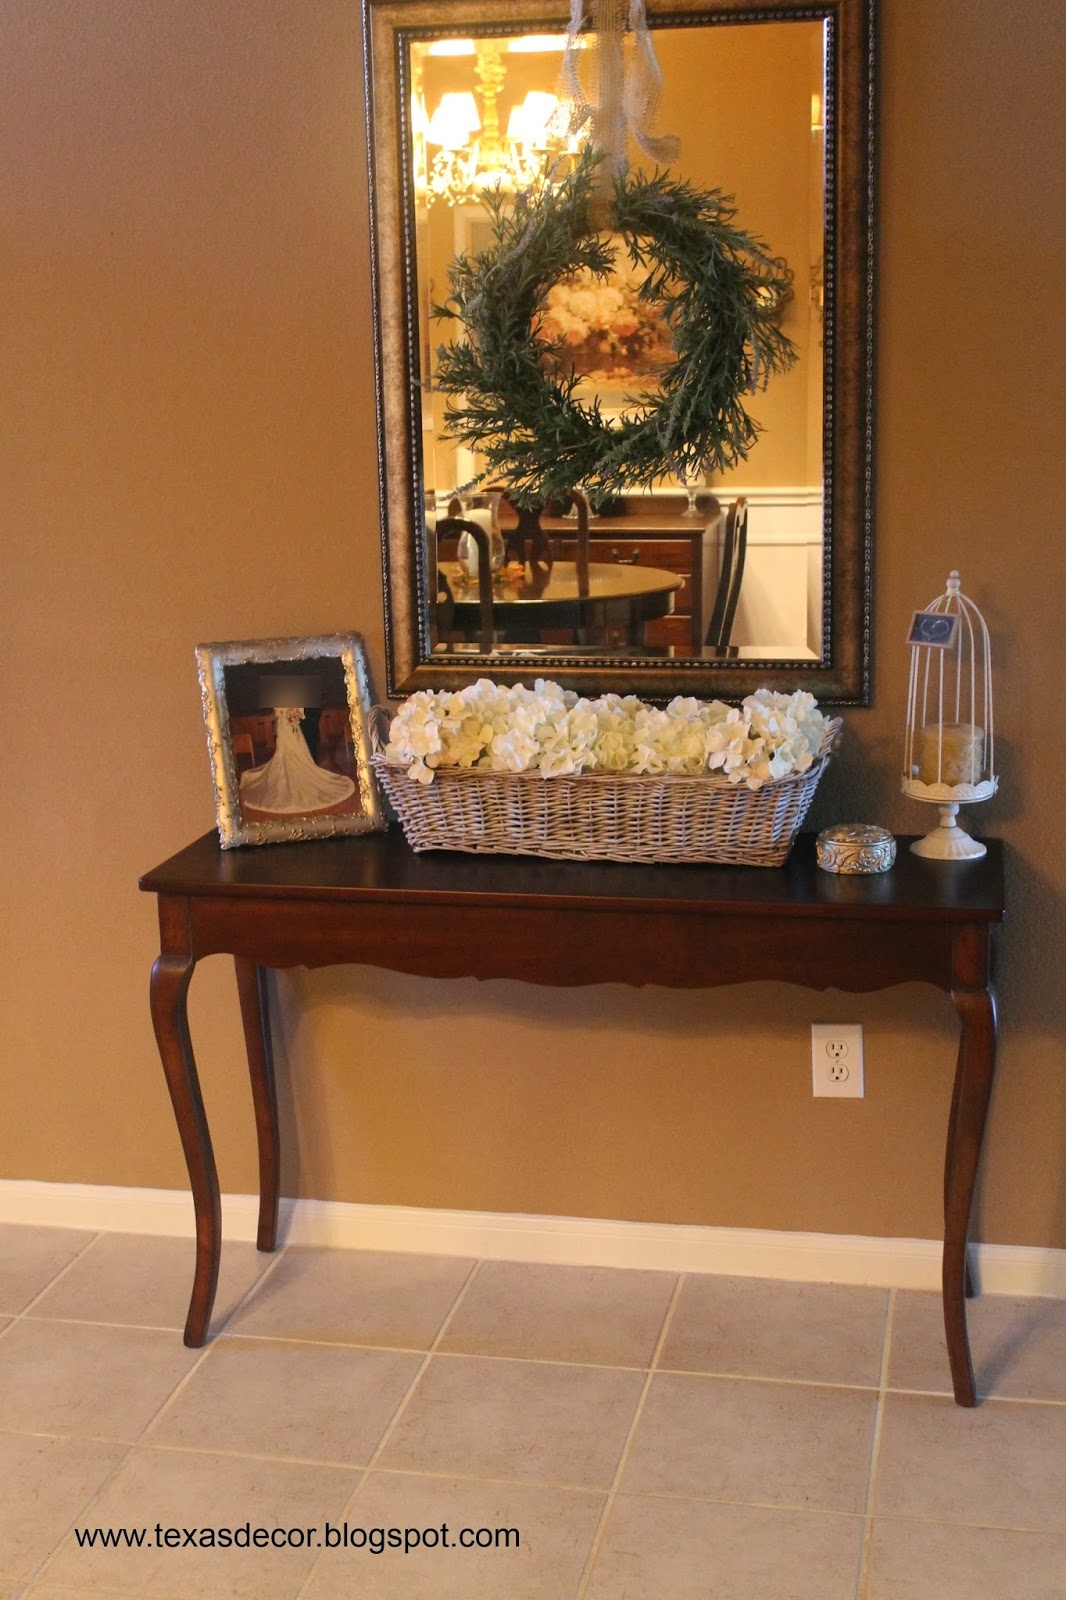 Texas Decor Foyer Basket And Dining Room Sideboard